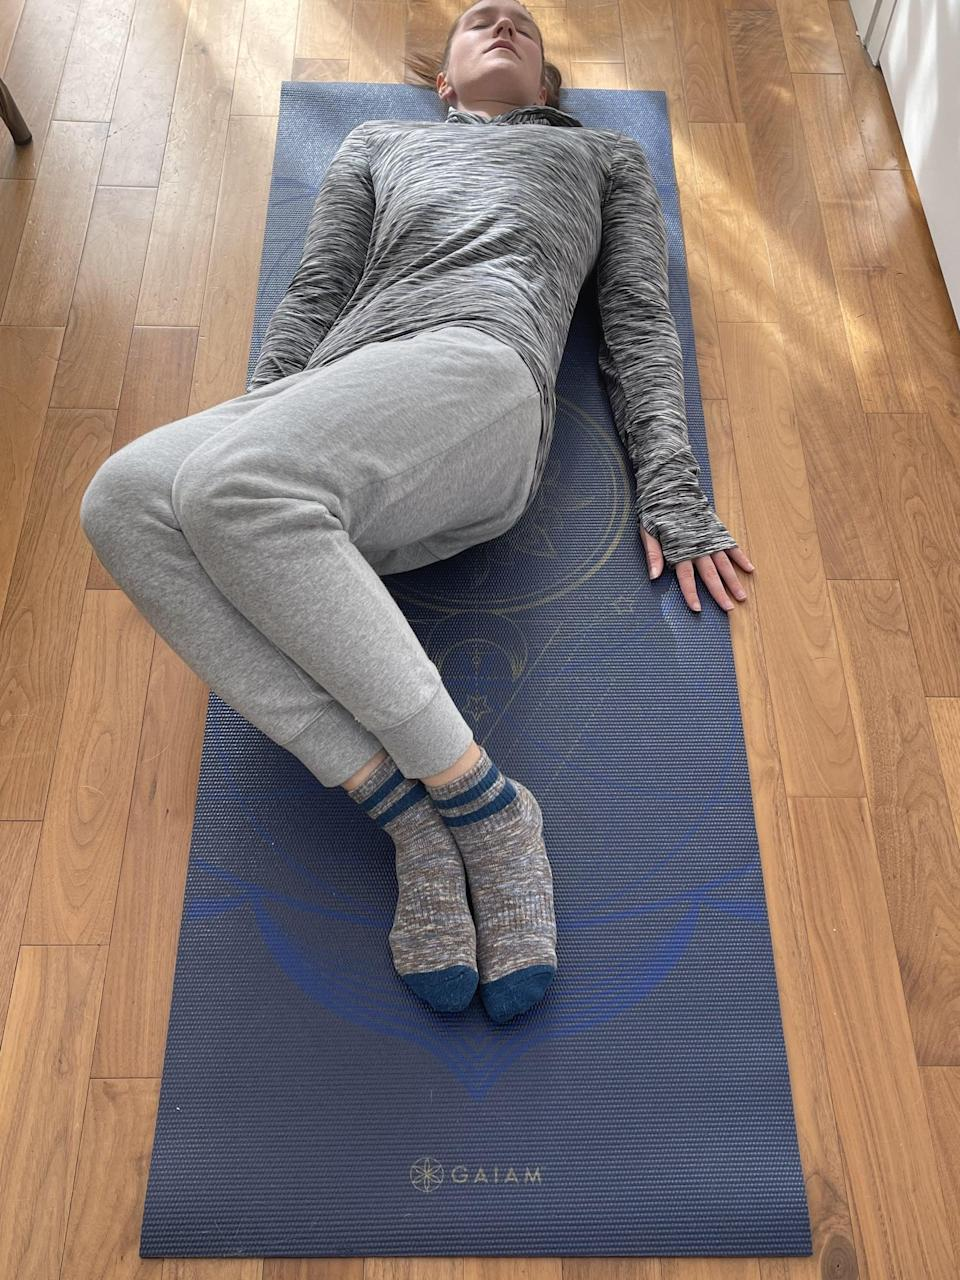 <p>This gentle stretch targets the lower back, Ribaudo said.</p> <ul> <li>Lying down on your back with your legs bent, feet flat on the floor, slowly let both legs fall to one side gently.</li> <li>Hold there for 10-15 seconds before slowly letting your legs fall to the other side. </li> <li>Repeat this three to five times on each side.</li> </ul>